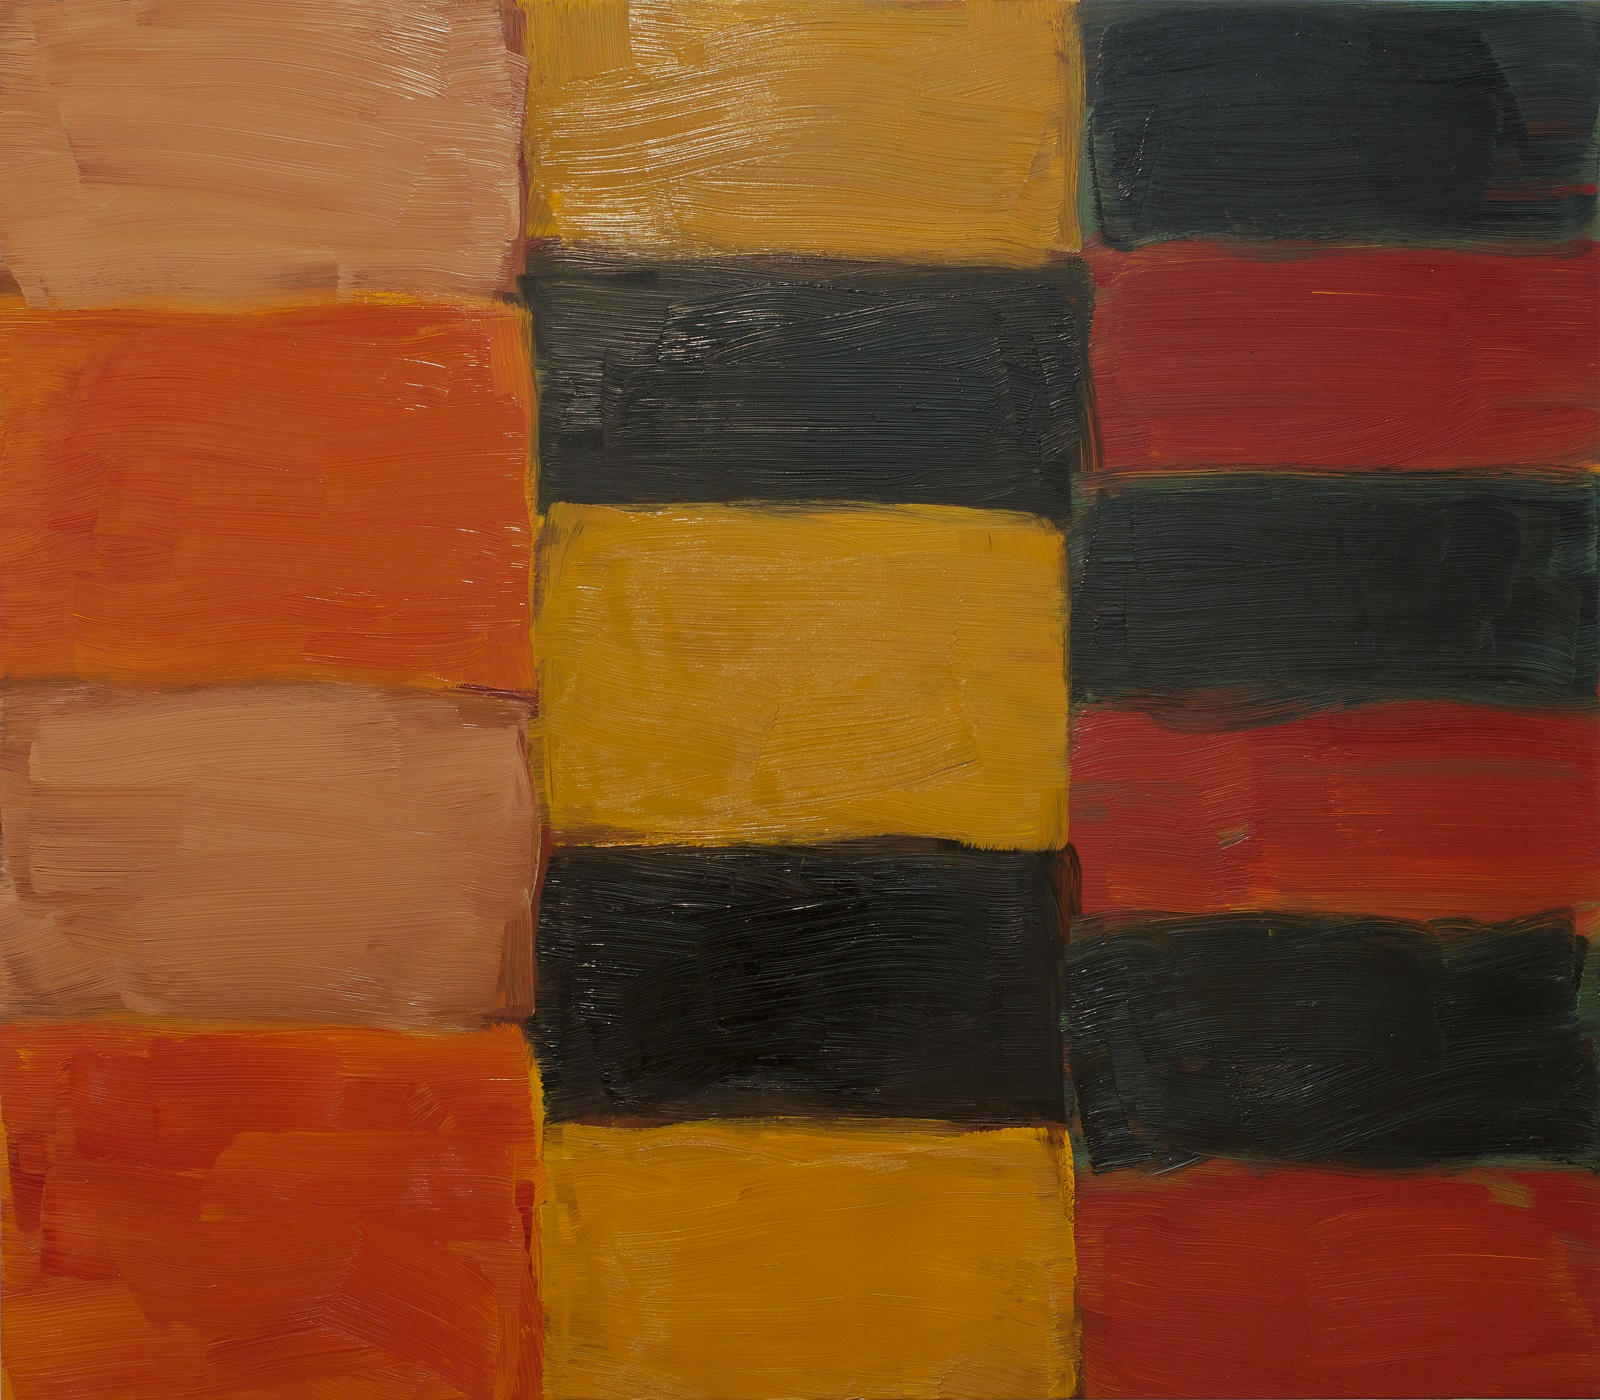 Three columns of coloured blocks. The left side has four blocks in orange and pale terracota orange; the central column has four blocks of yellow and black; the final column has six blocks in red and black.